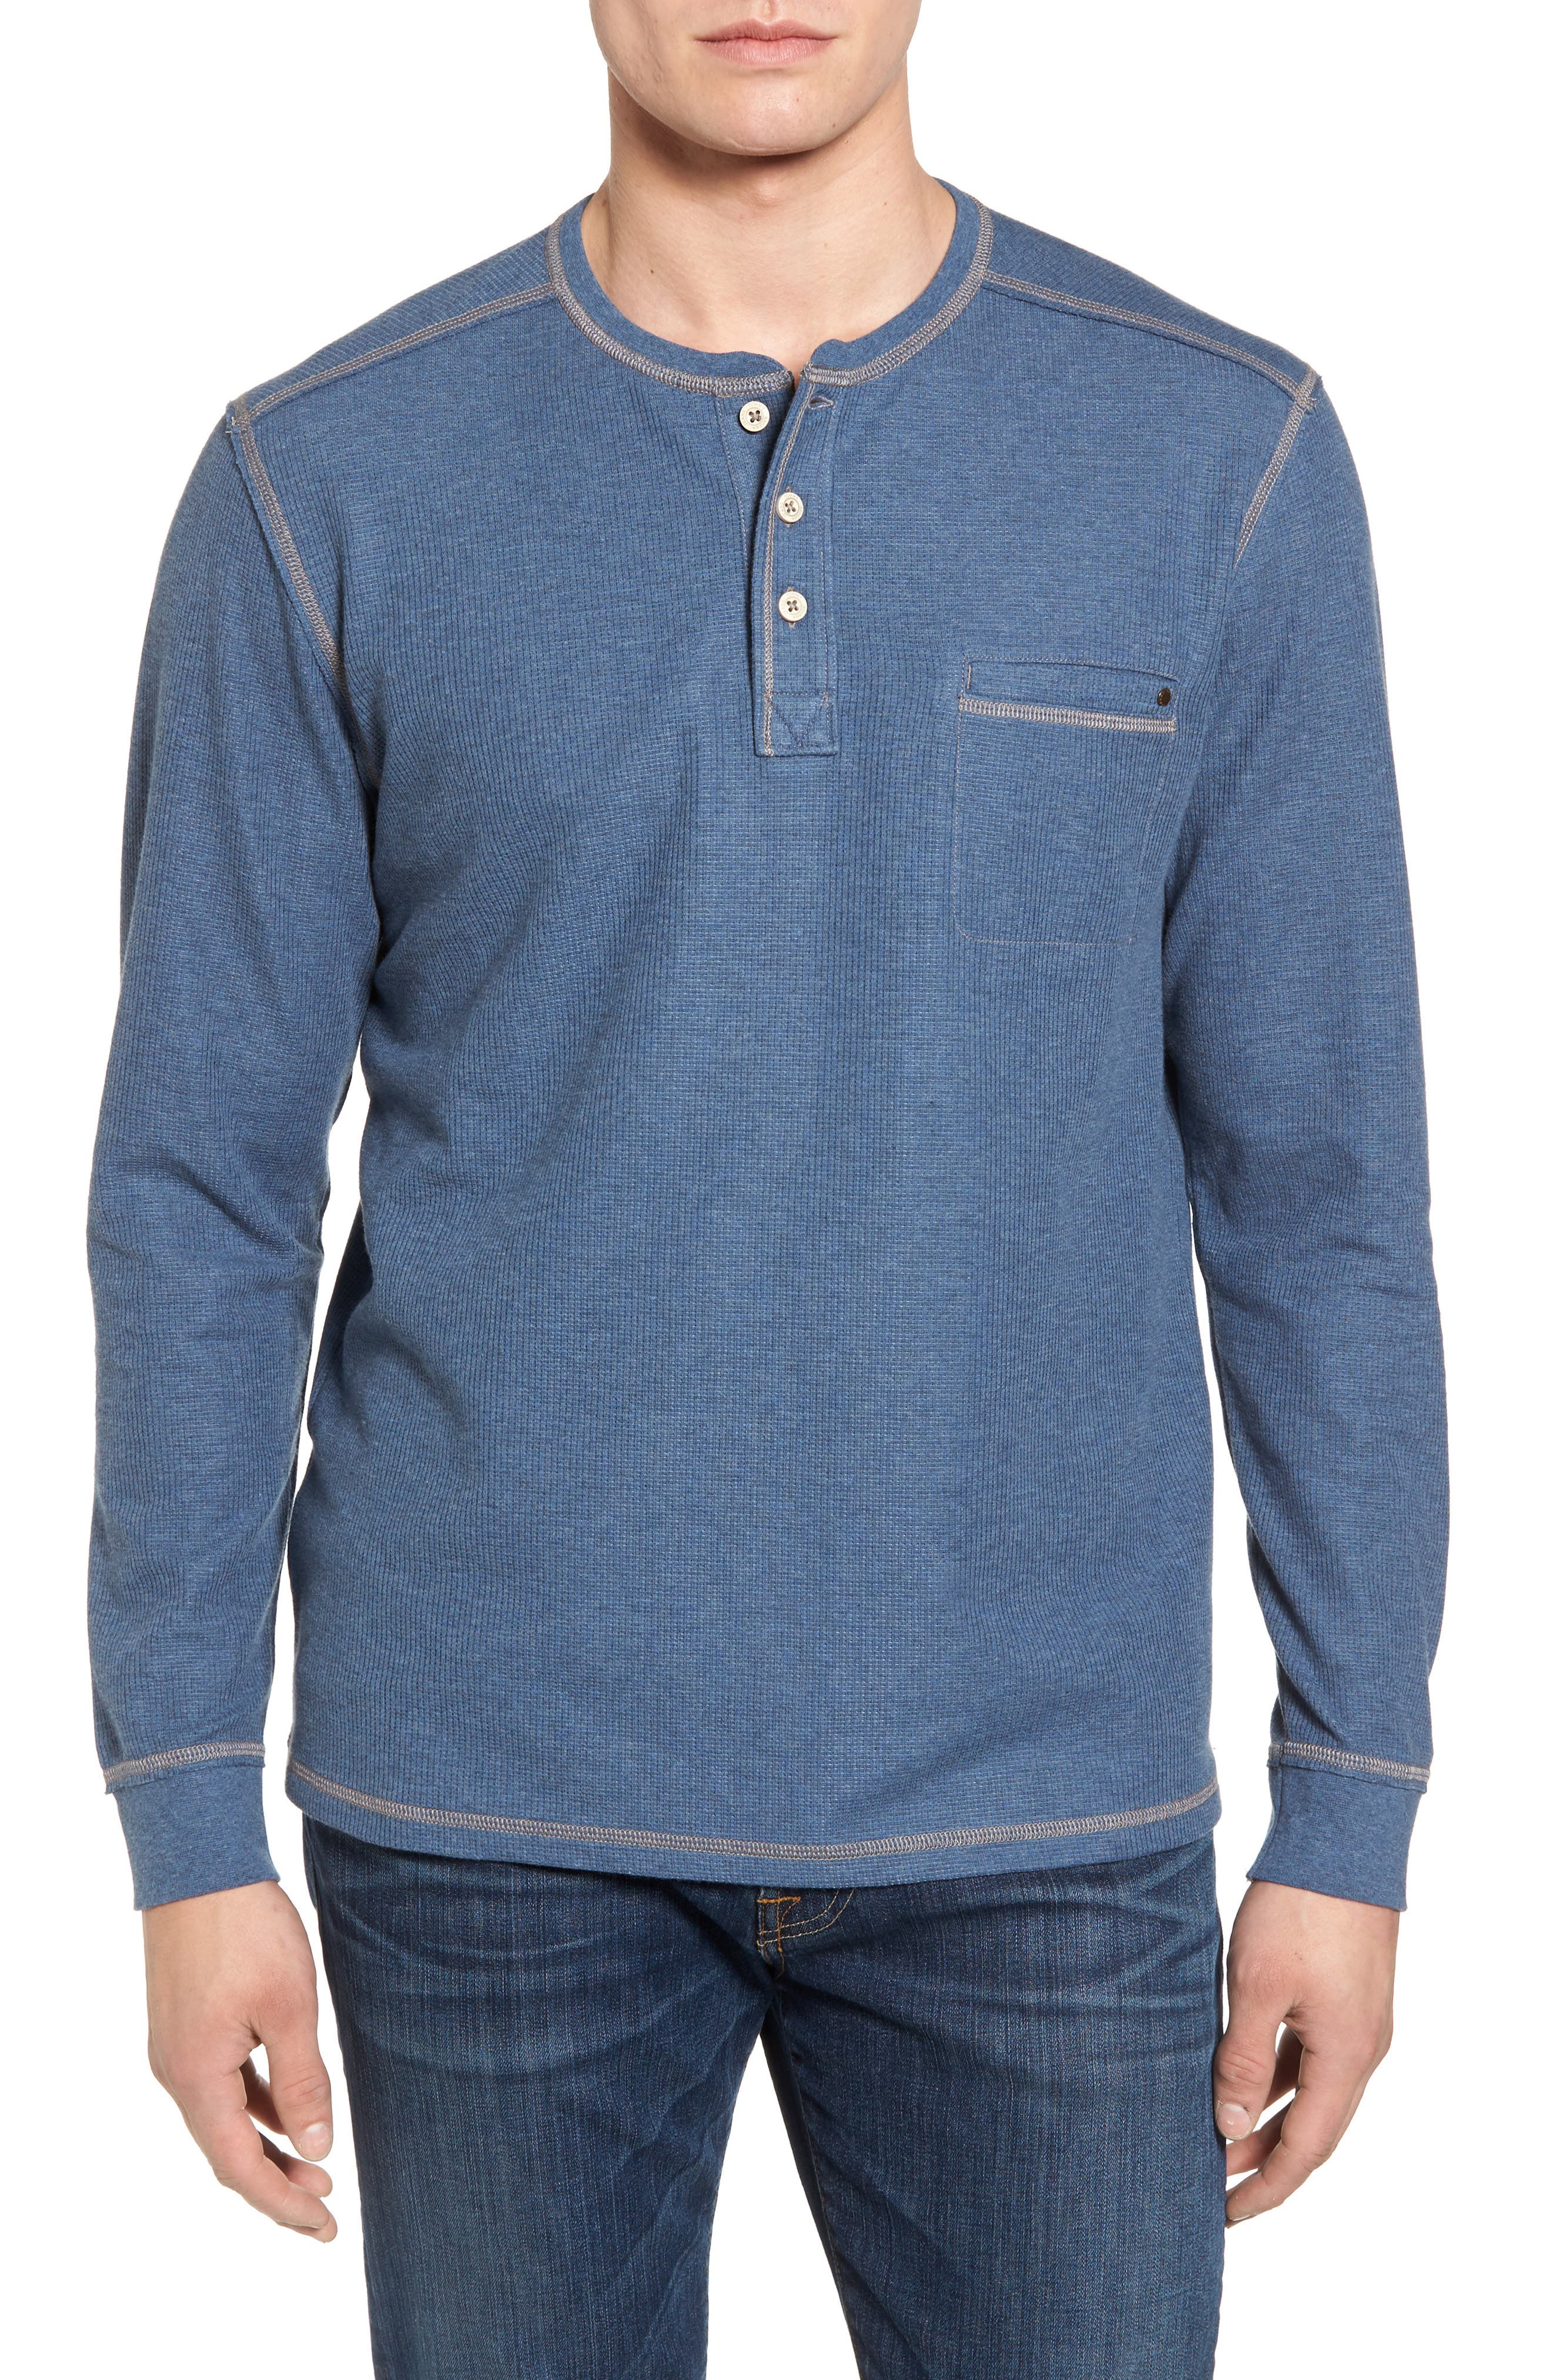 Alternate Image 1 Selected - Tommy Bahama Island Thermal Standard Fit Thermal Henley